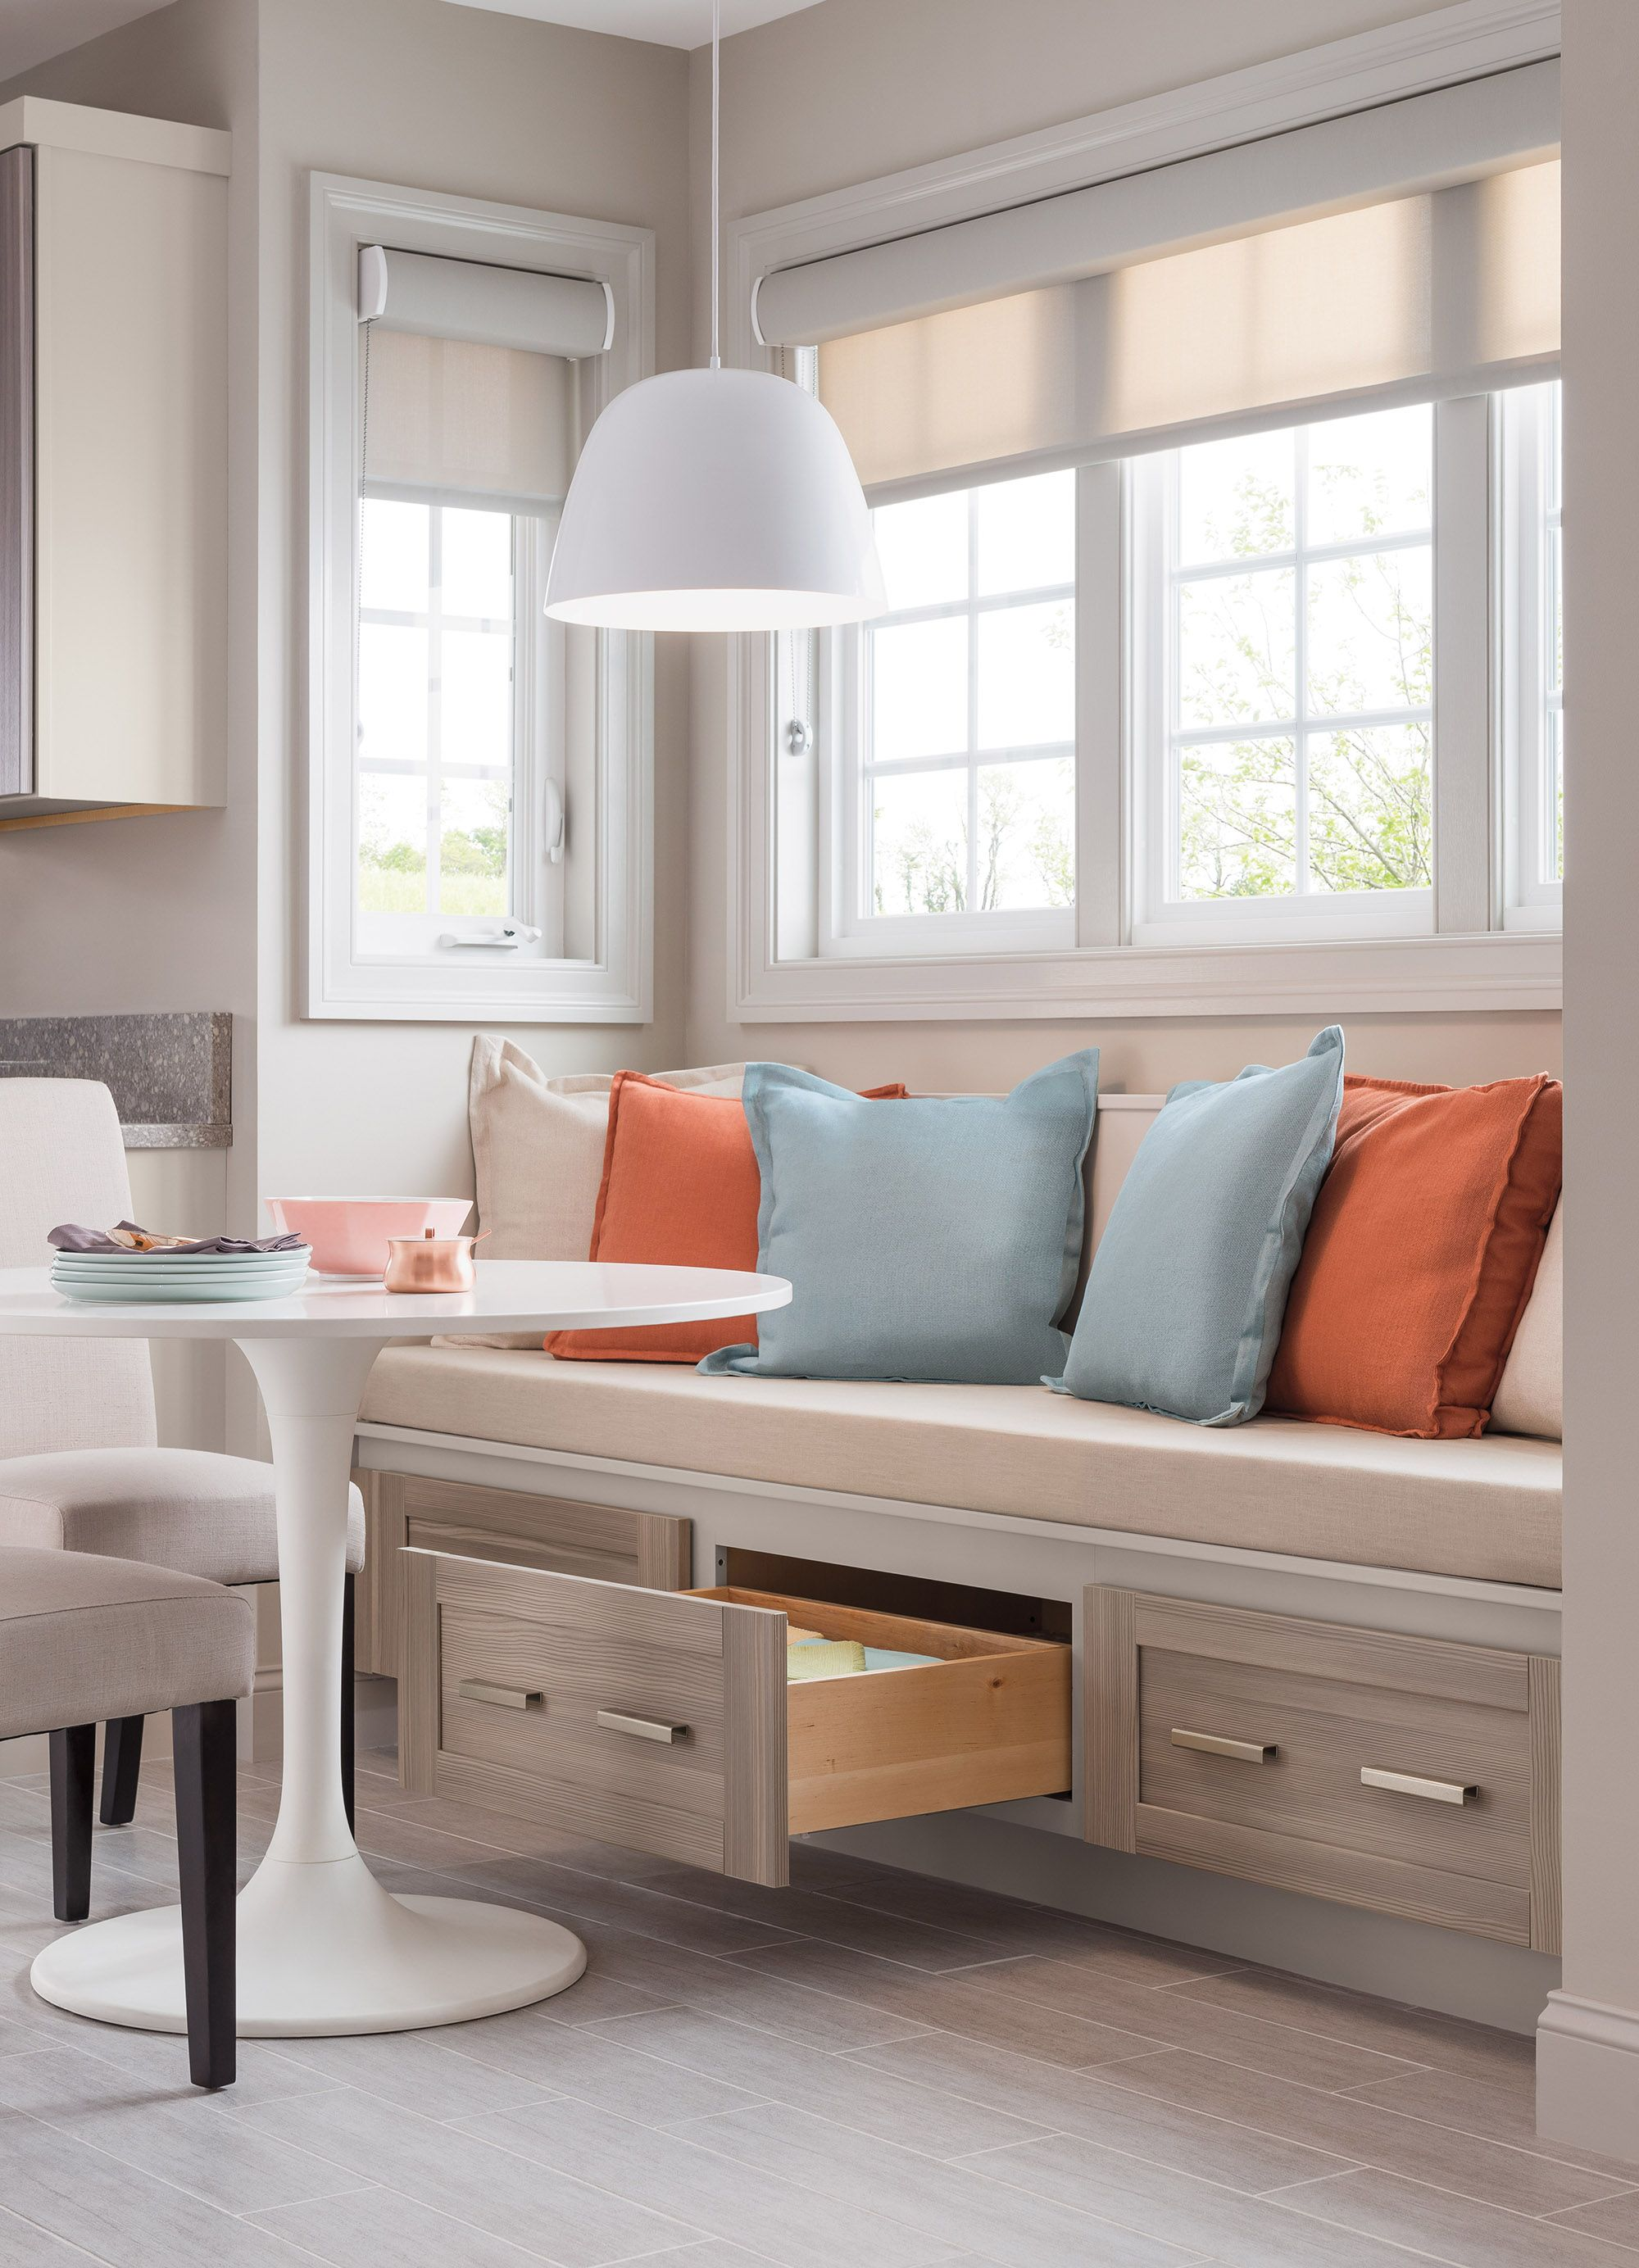 Eating Nook Save Space And Create More Seating Using Kitchen Cabinetry As A Bench Learn How To The Perfect